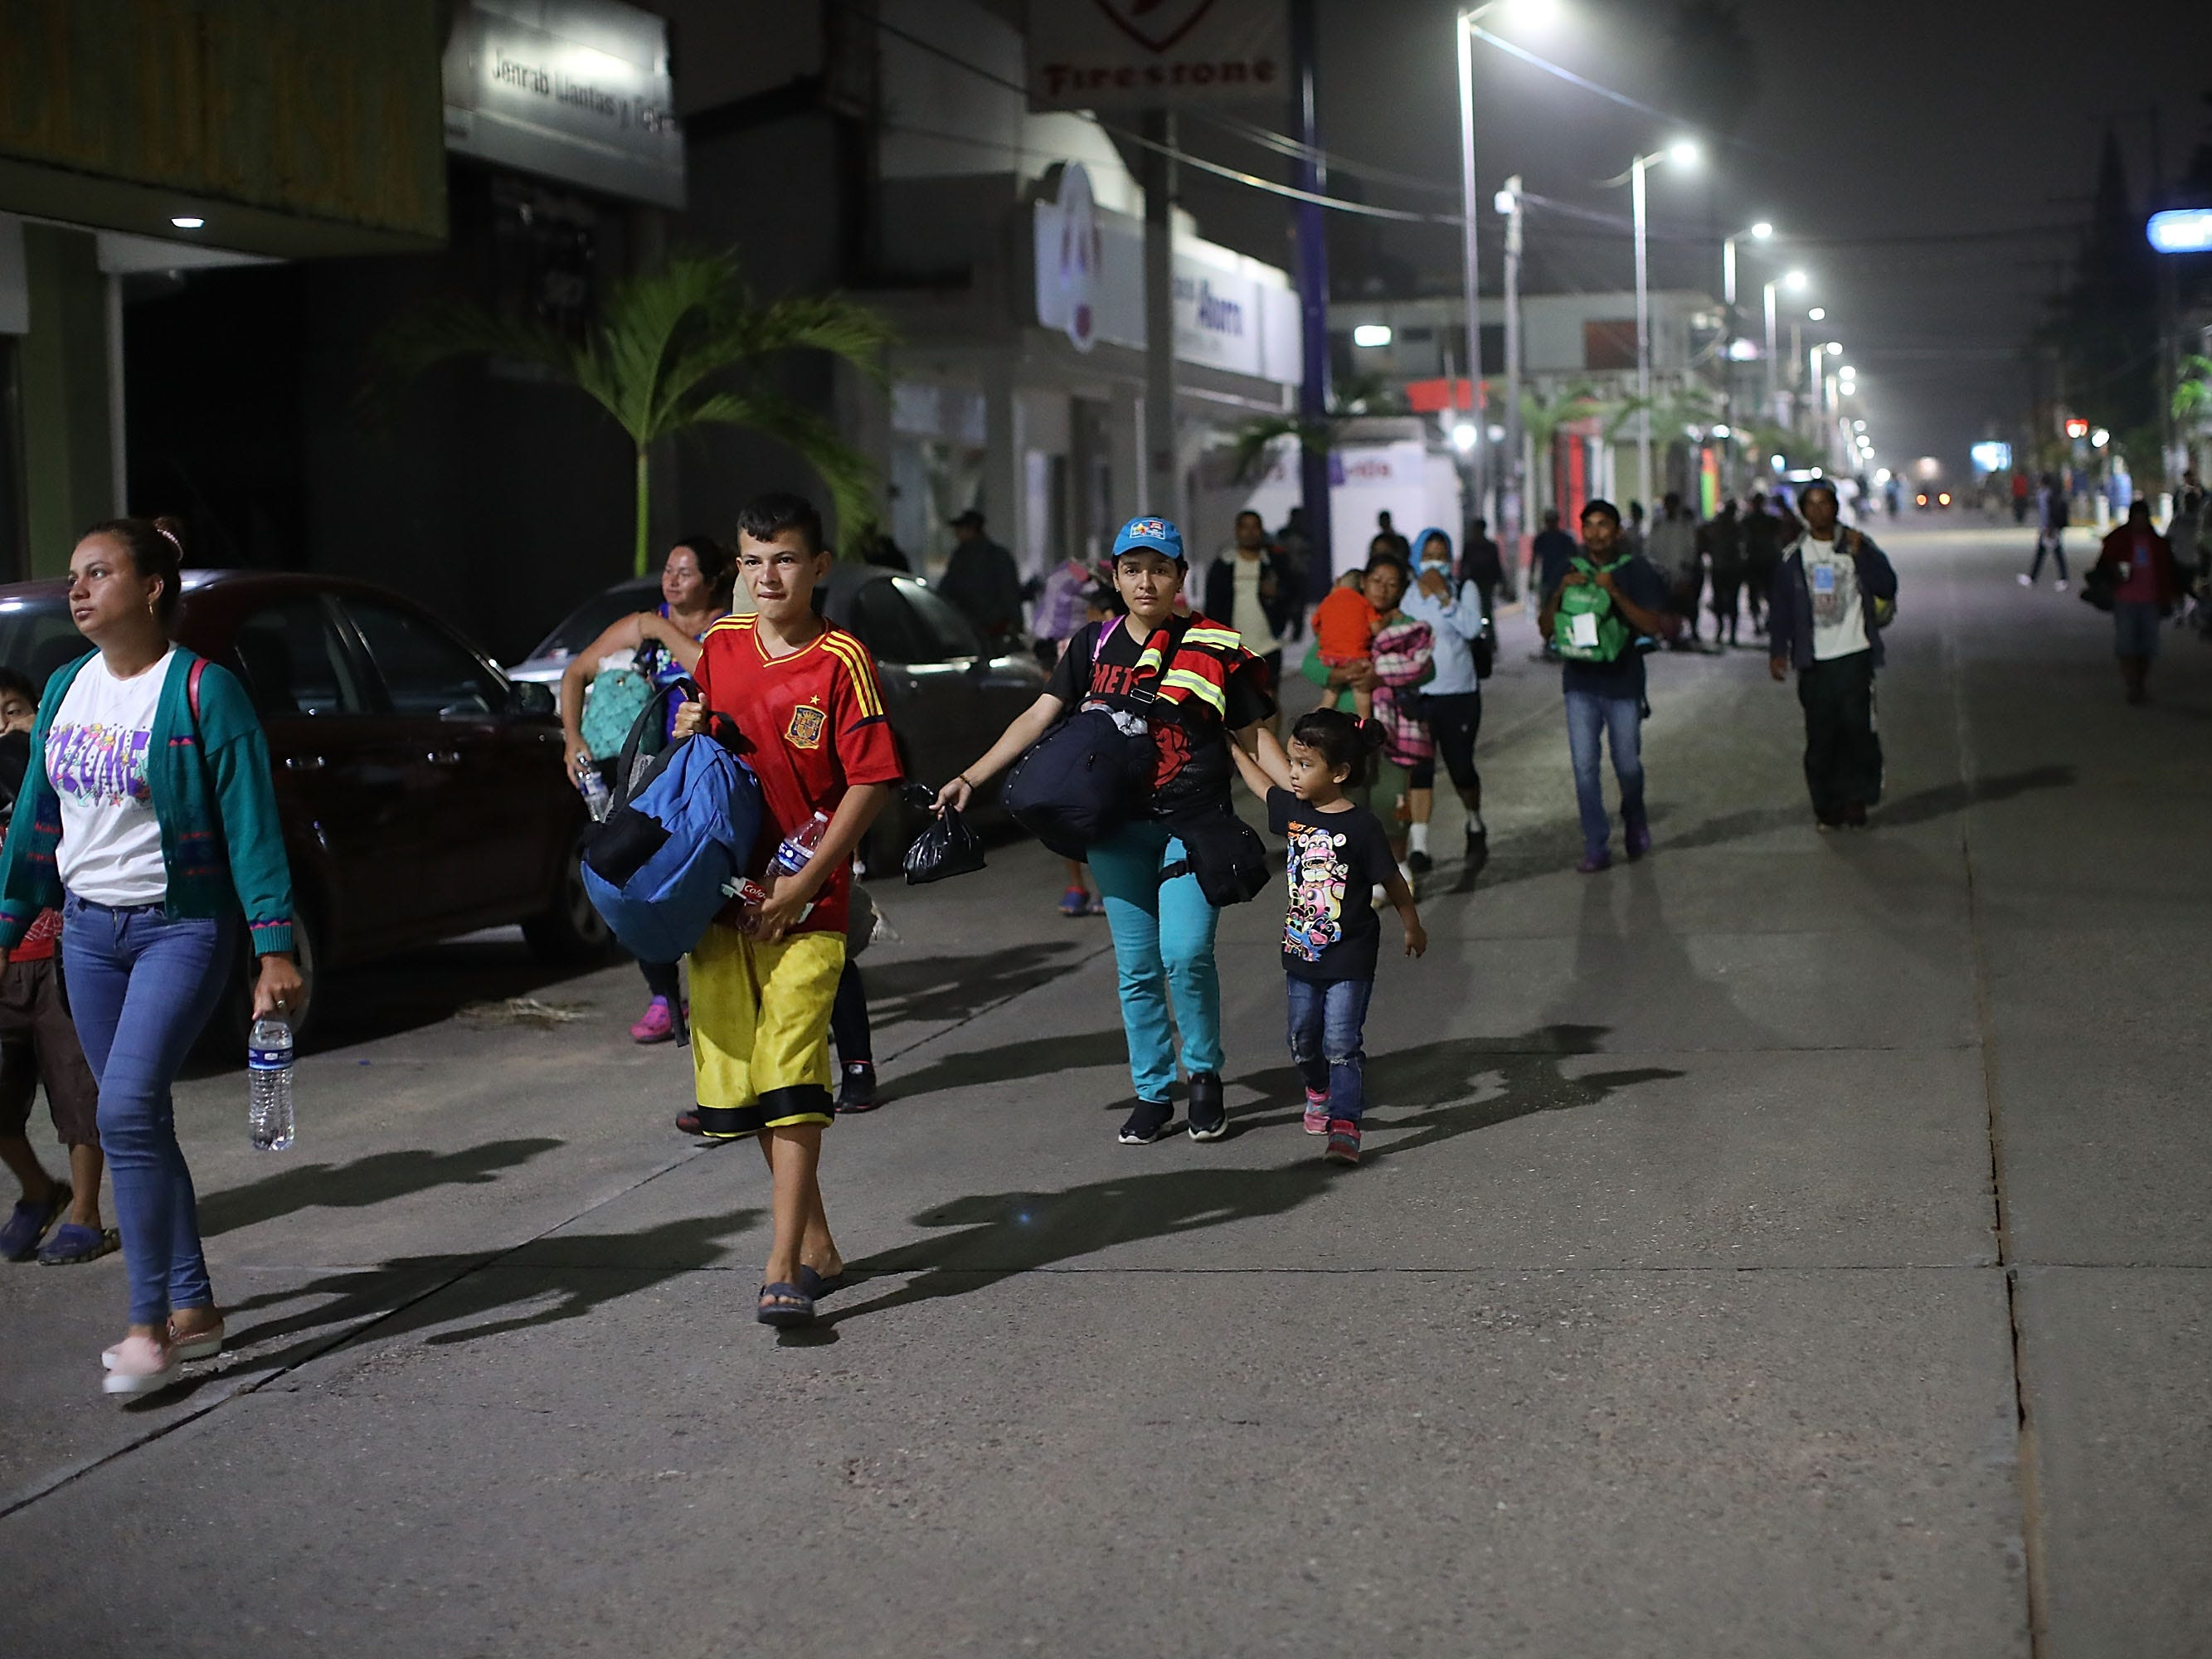 Hundreds of members of the Central American migrant caravan move in the early hours toward their next destination on Nov. 04, 2018 in Isla, Mexico.